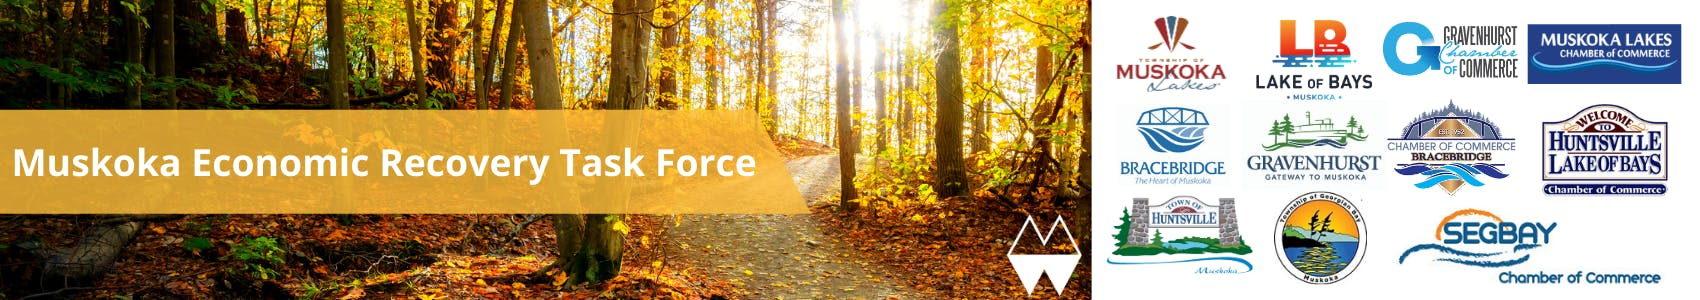 Muskoka Economic Recovery Task Force banner is placed on the left side of the image. There is a small pathway directly in the middle of a forested area in the fall season. A small, white, District logo is in the bottom right corner of the image.